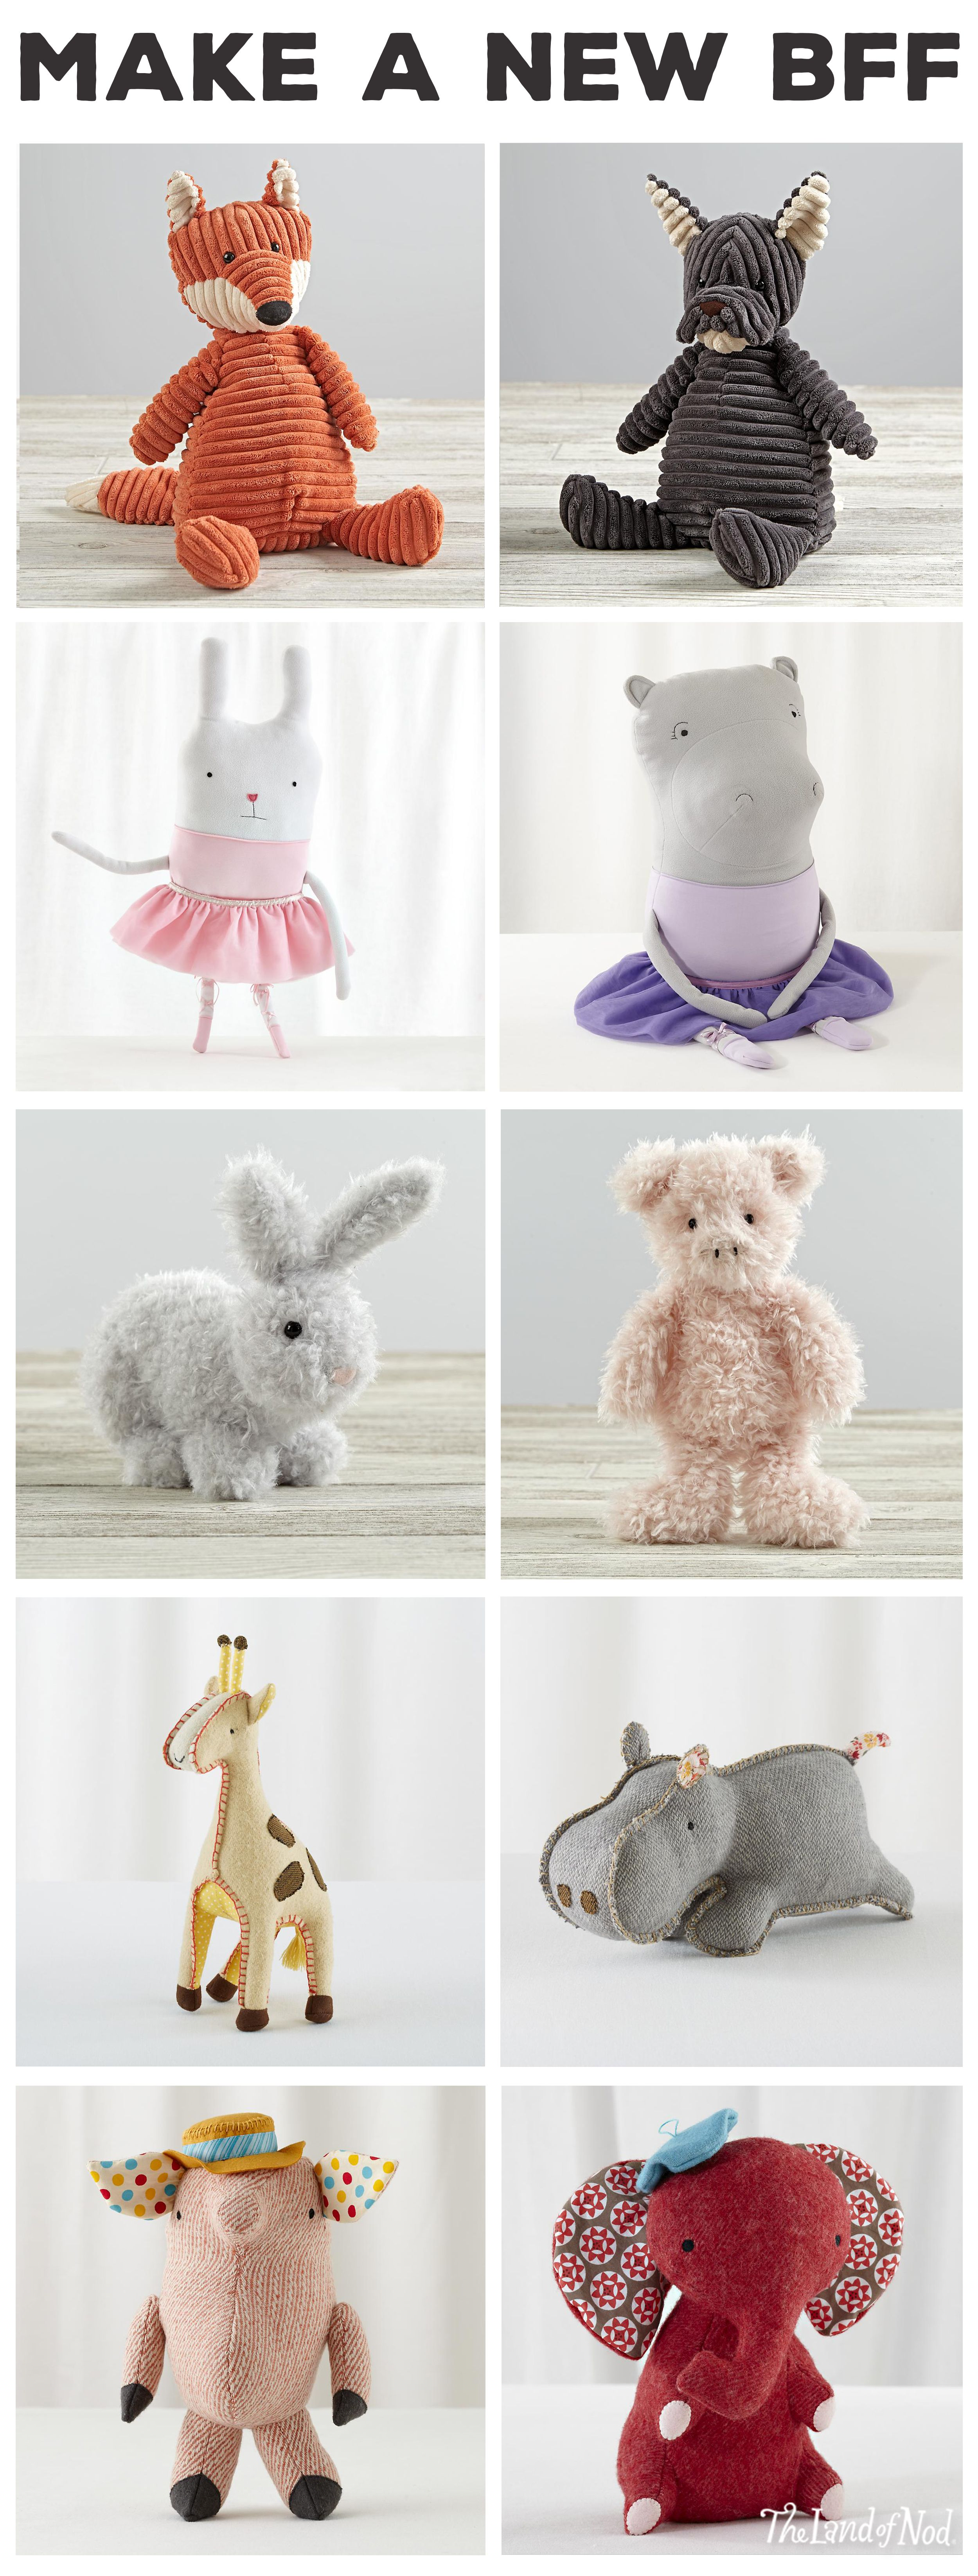 If your little ones are looking for the perfect sidekick, you're in luck. We've got tons of stuffed animals and dolls to keep them in good company. From doll furniture and unicorns to ride-ons and baby dolls, these classic toys make the perfect gifts for anyone on your list.